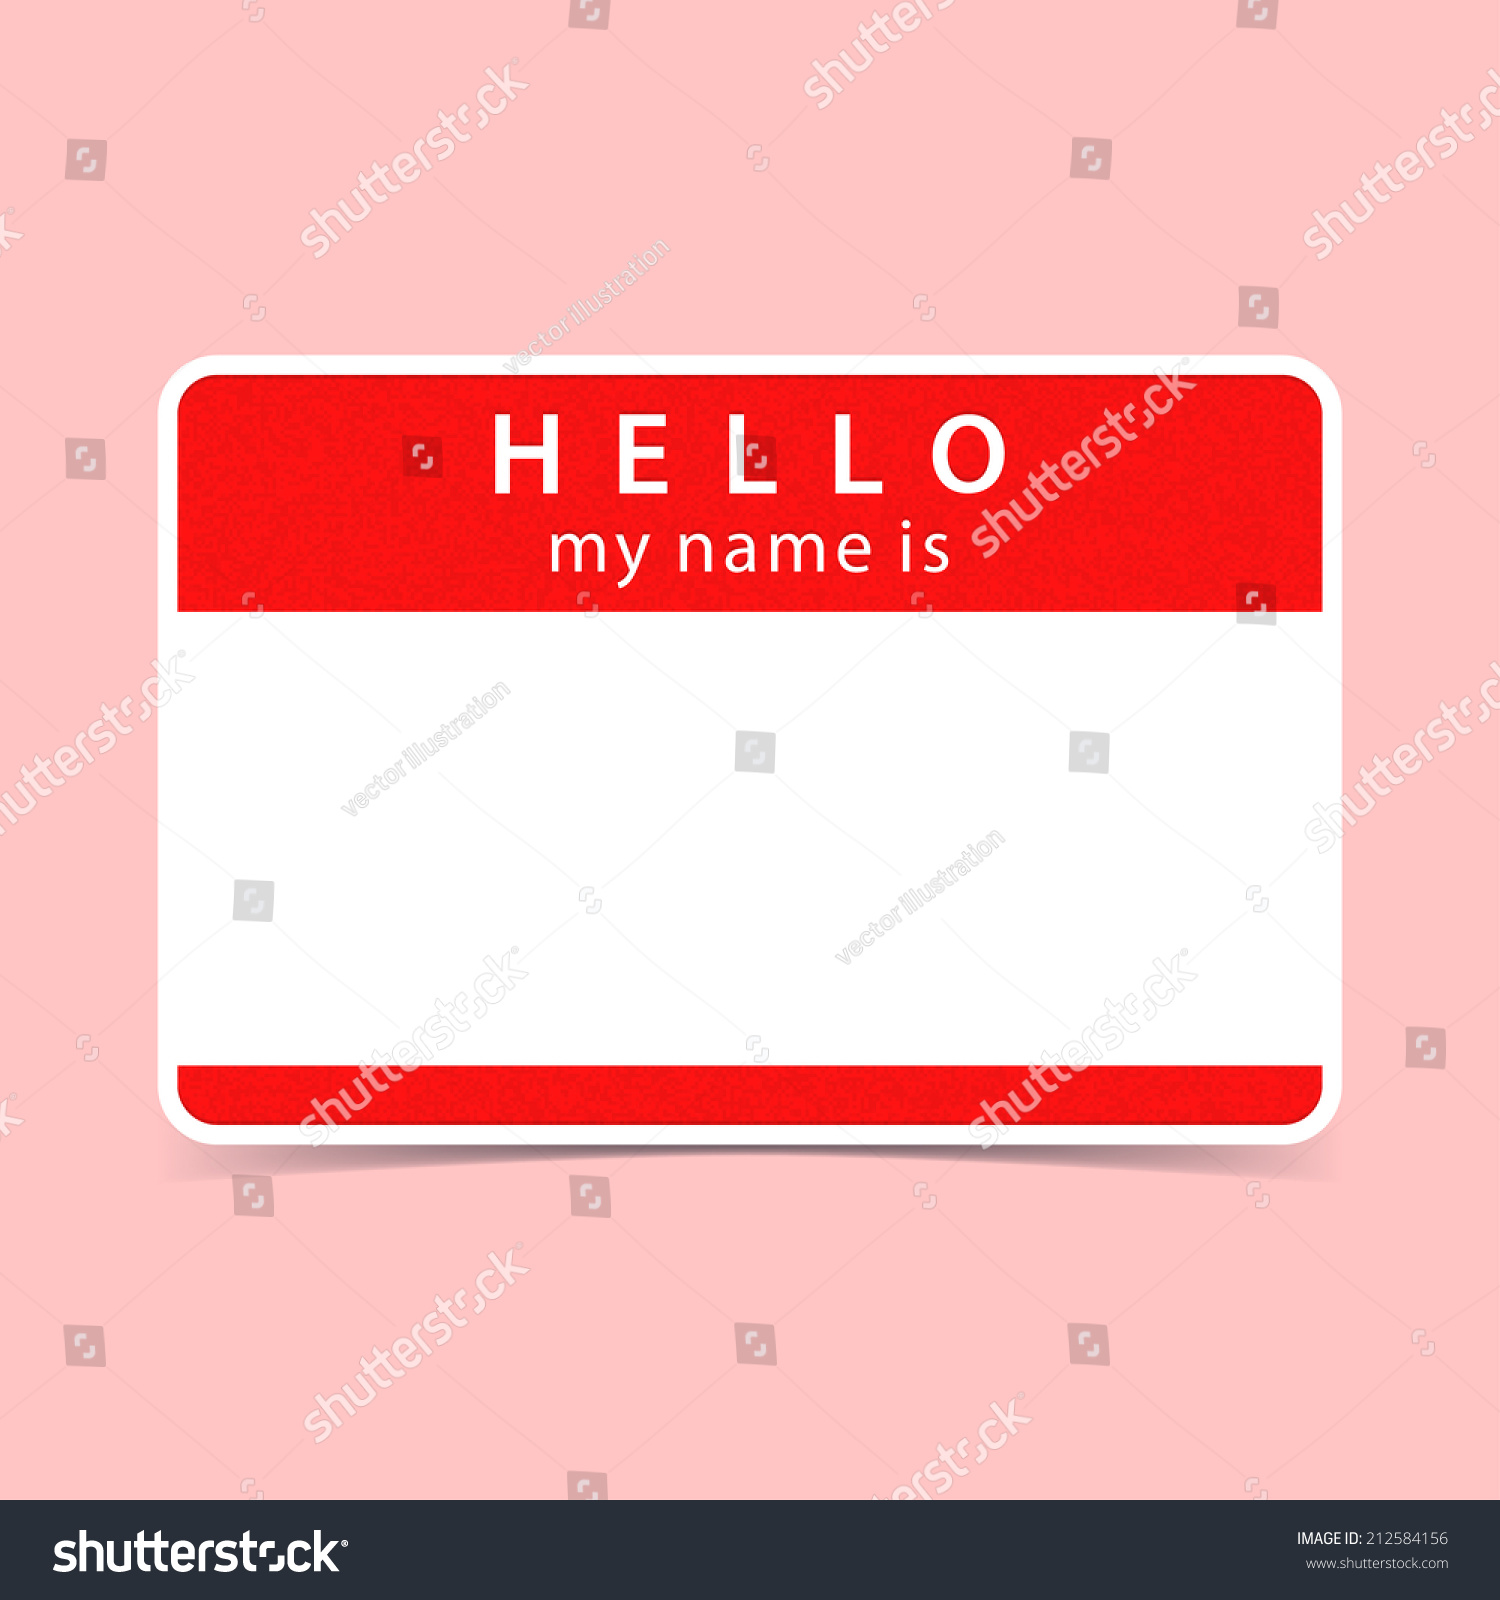 H tag background image - Red Name Tag Blank Sticker Hello My Name Is Rounded Rectangular Badge With Gray Drop